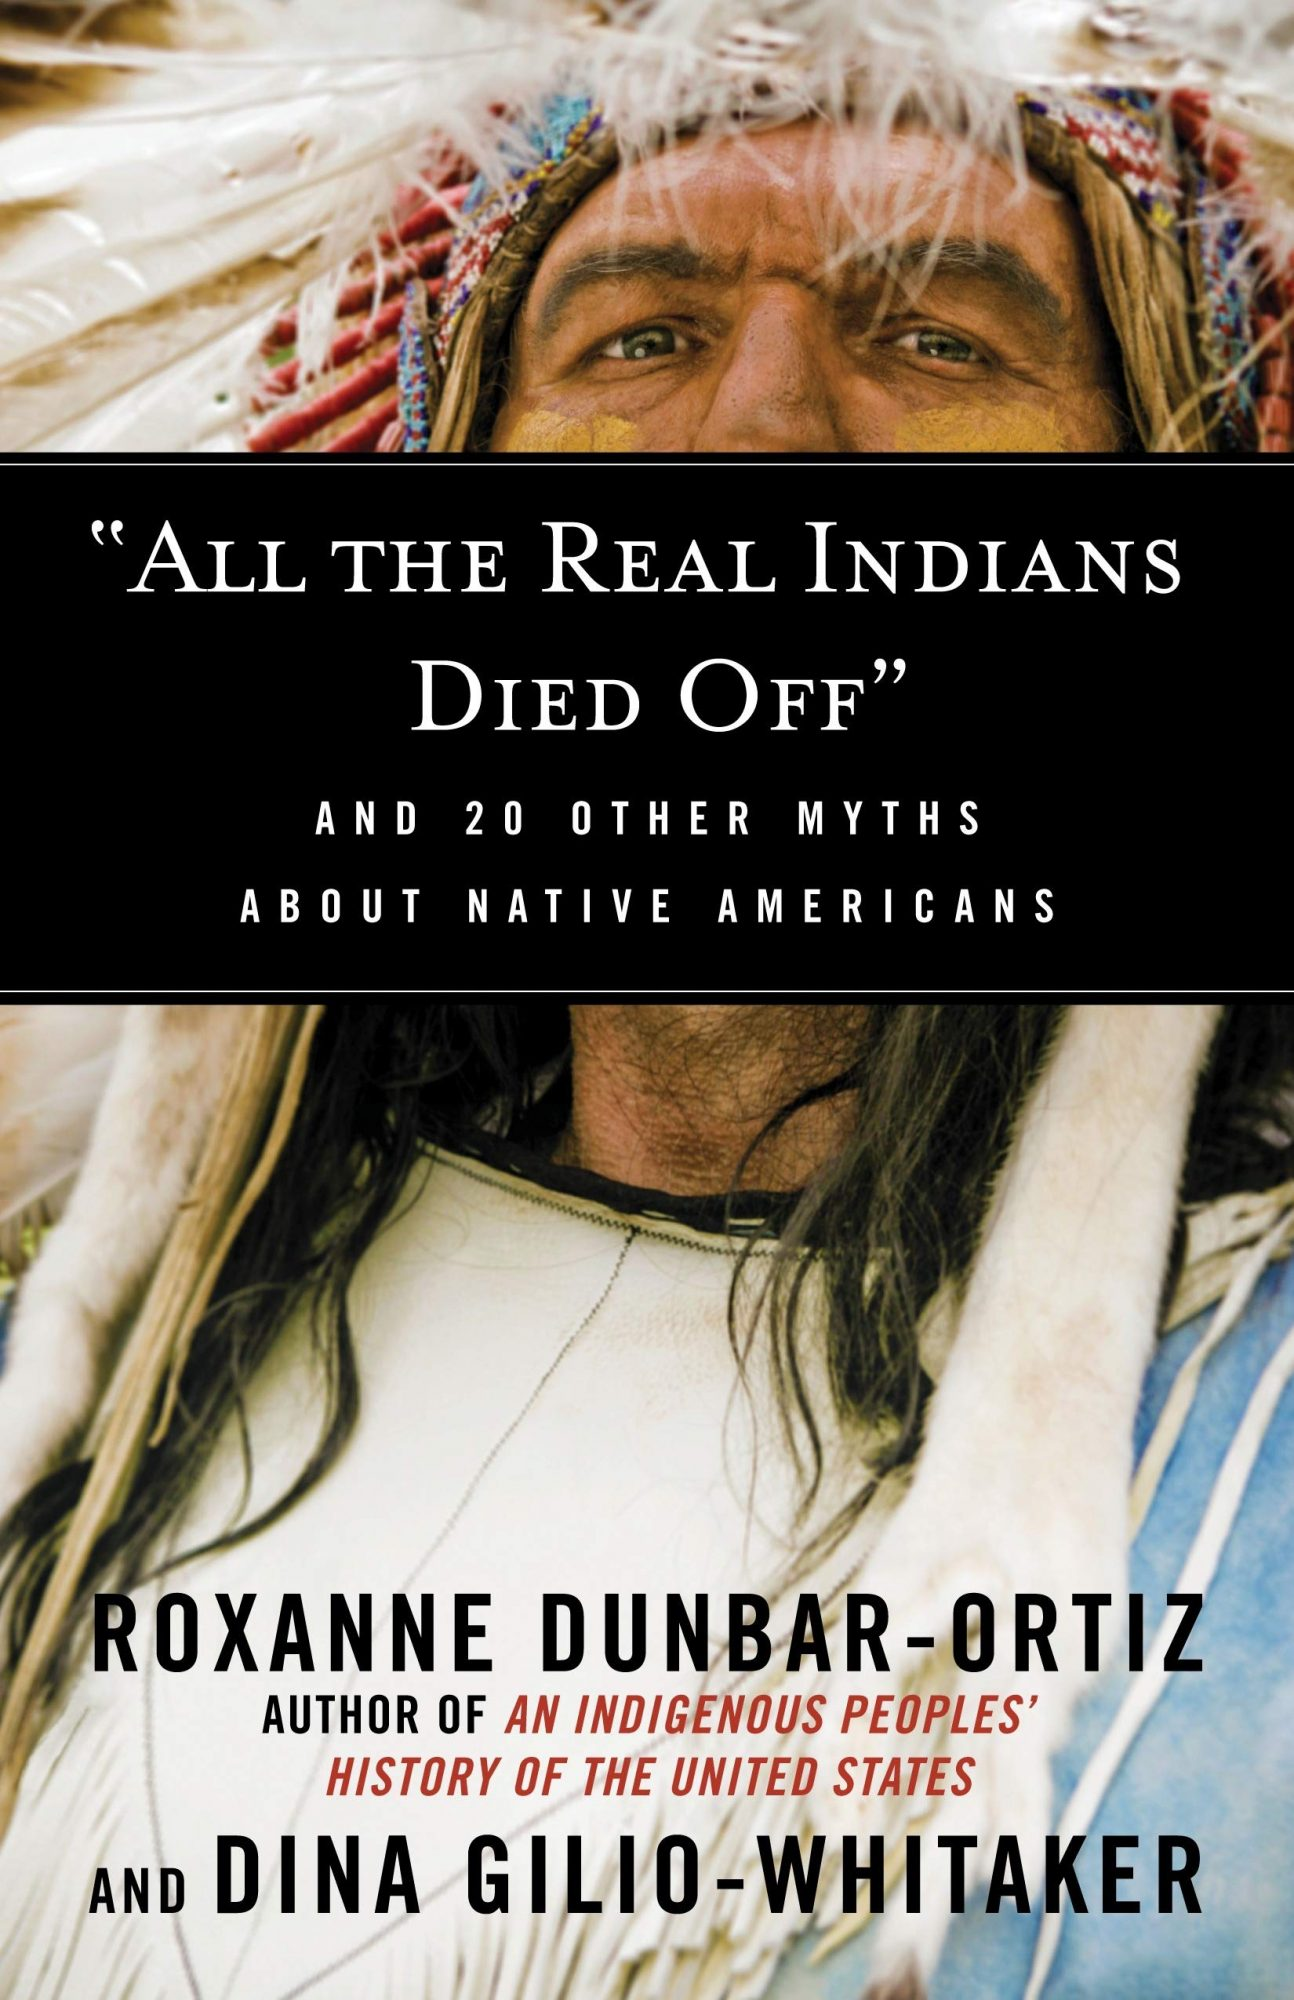 all-the-real-indians-died-off.jpg